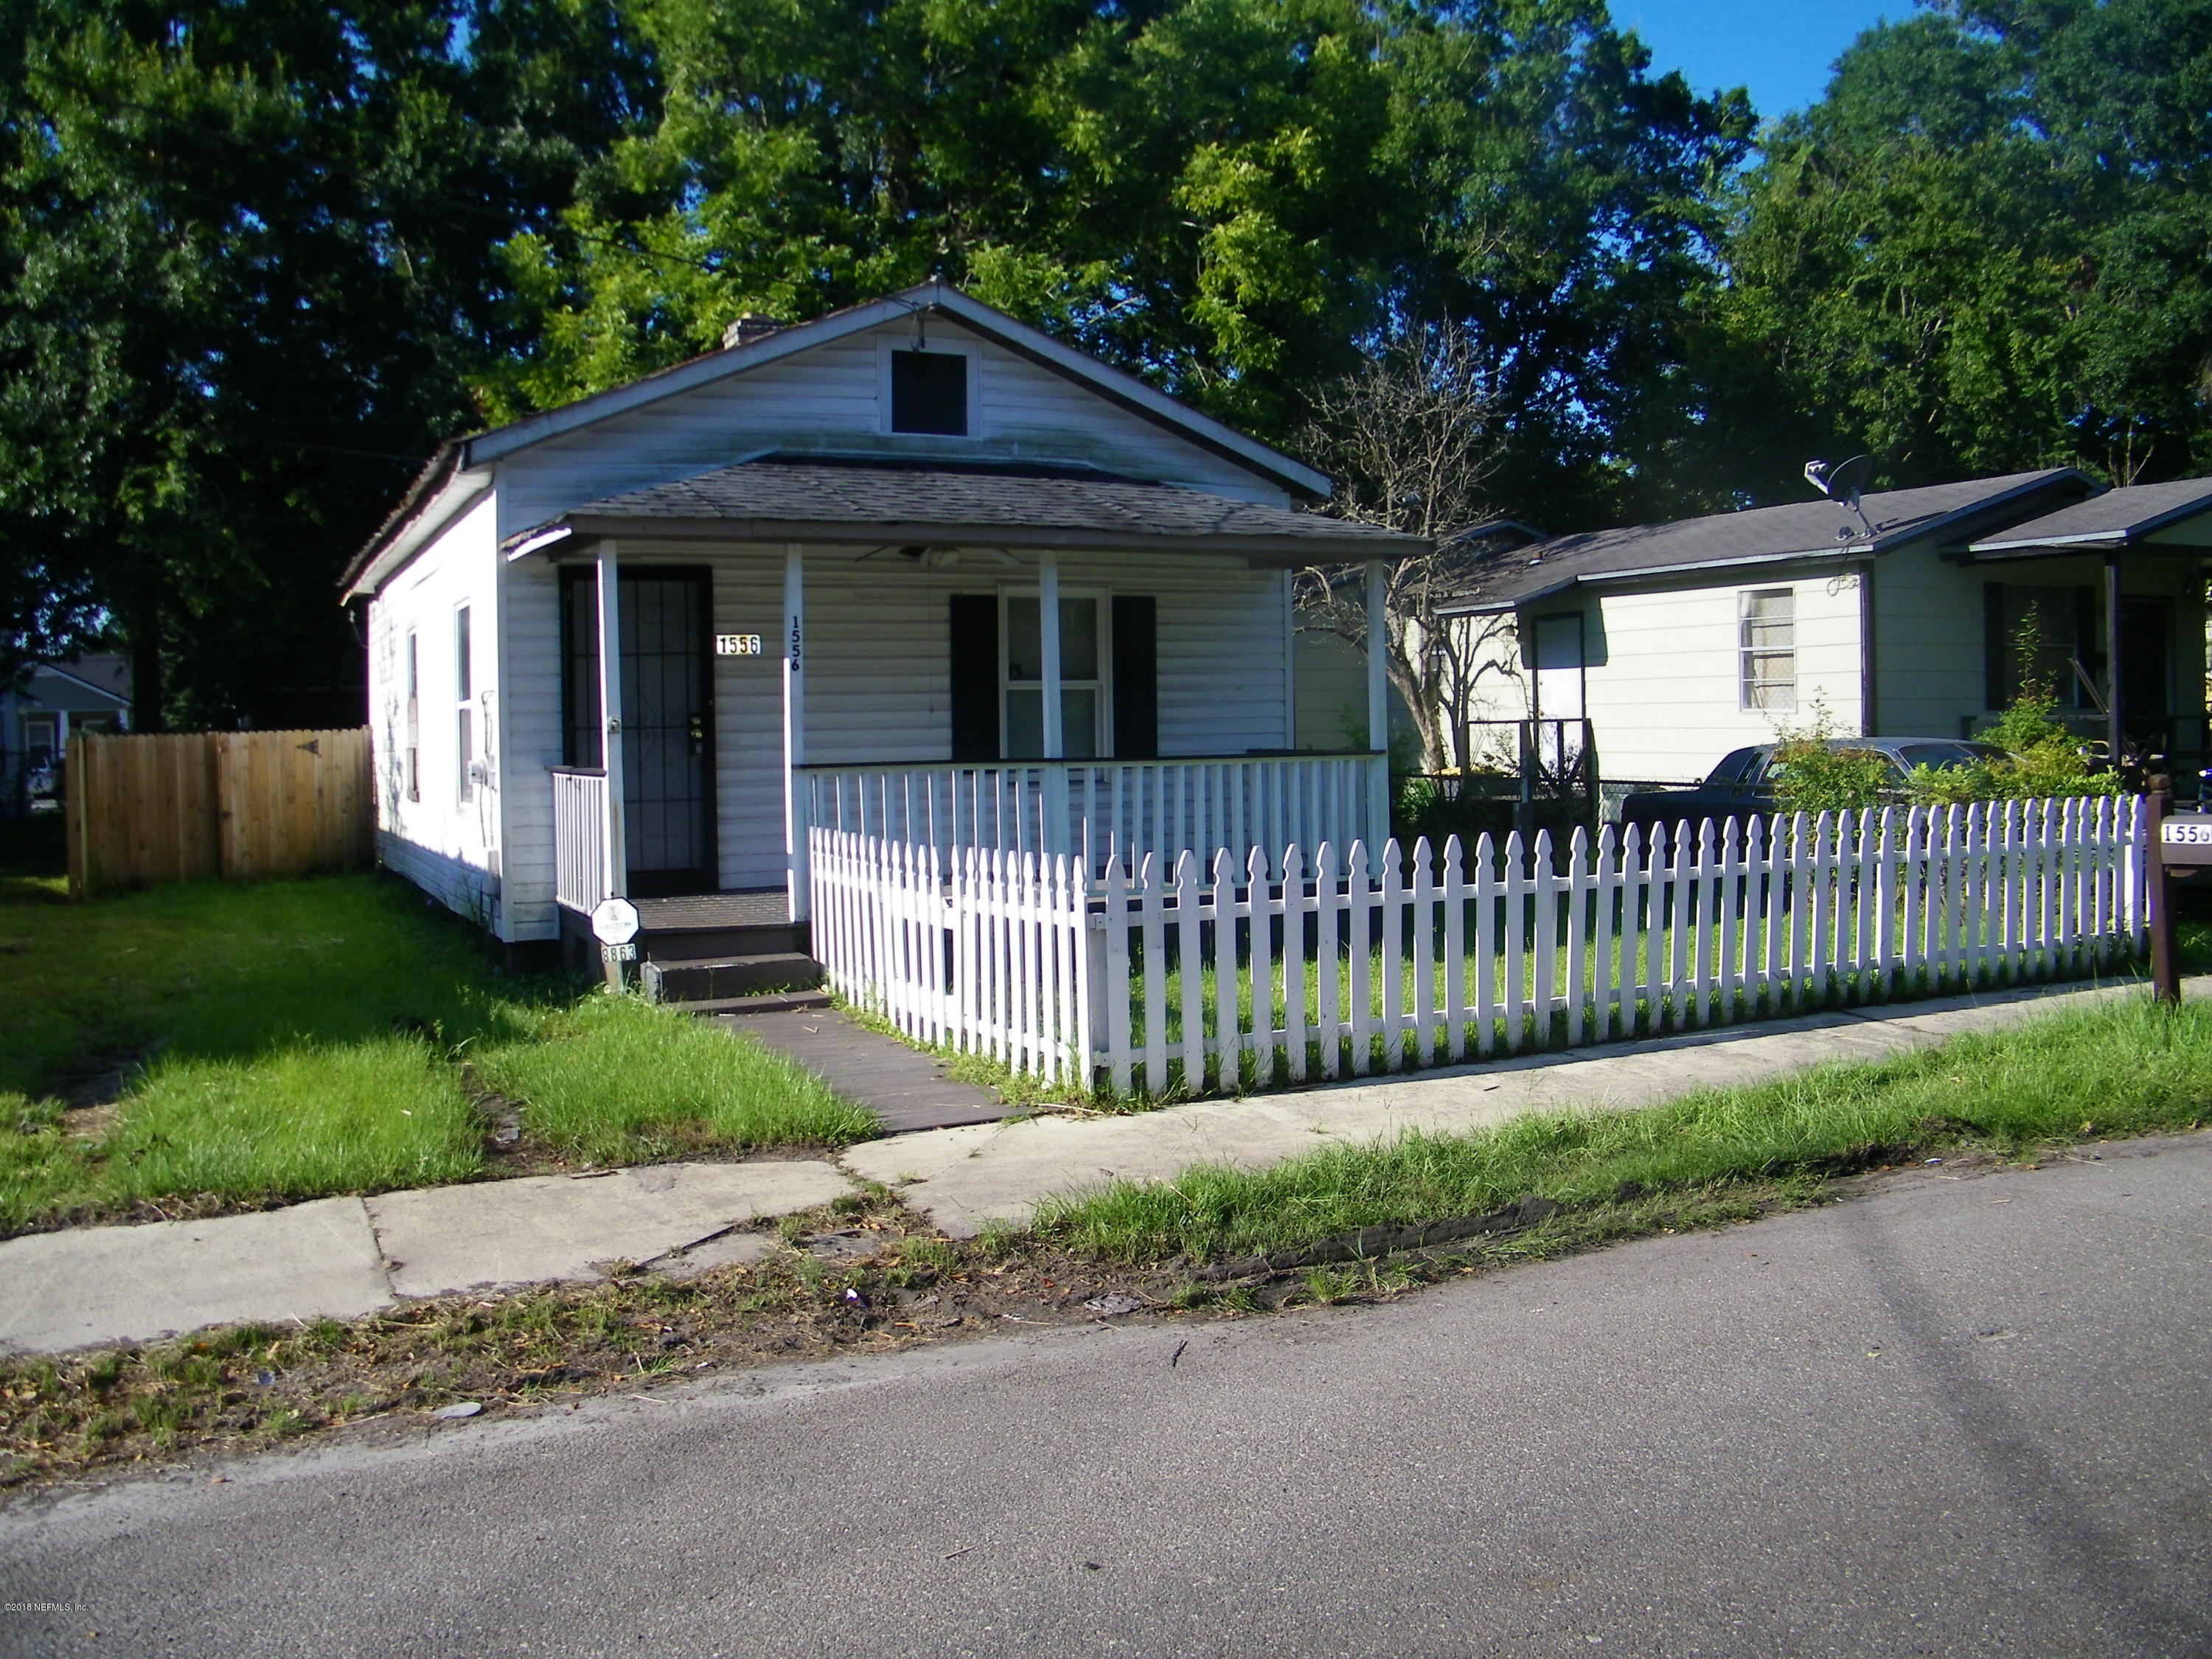 1556 UNION, JACKSONVILLE, FLORIDA 32209, 2 Bedrooms Bedrooms, ,1 BathroomBathrooms,Residential - single family,For sale,UNION,951654